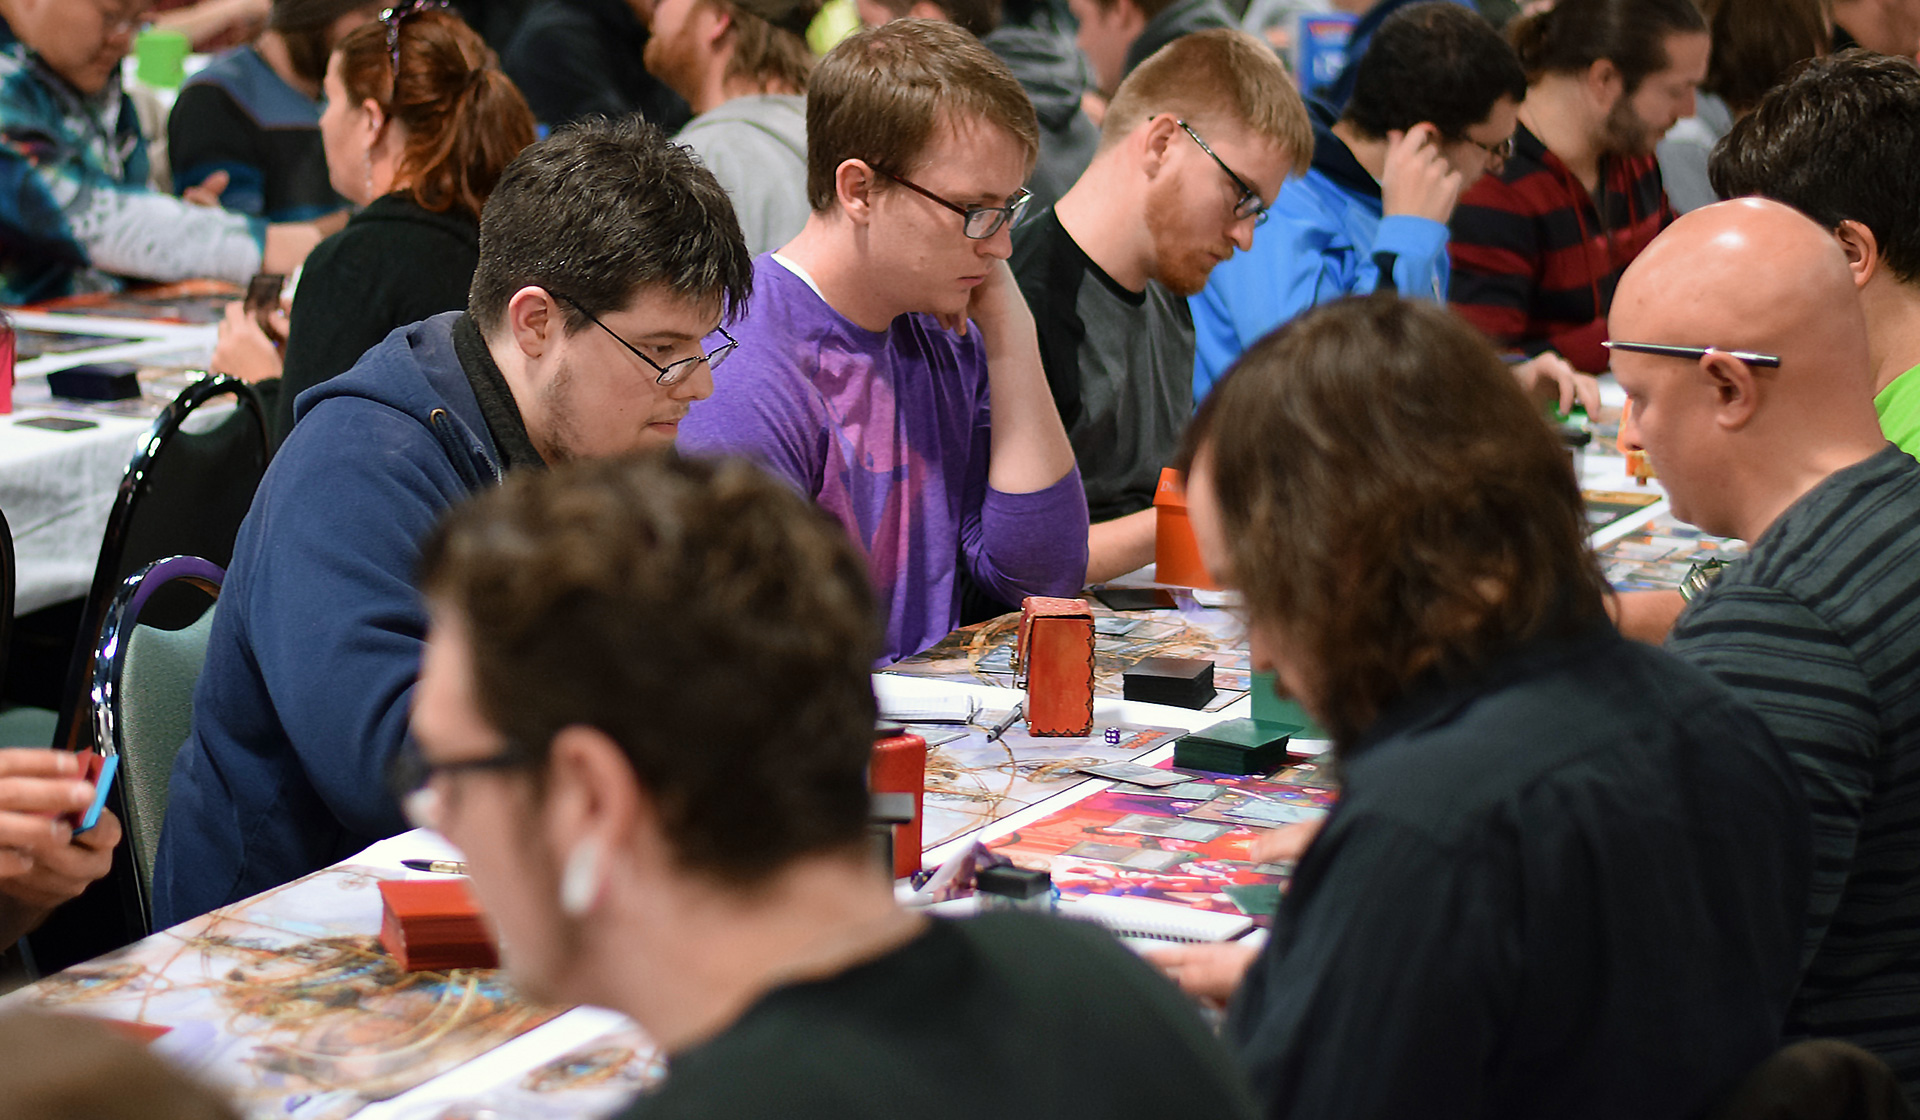 https://magic.wizards.com/en/events/premierplay/2018nationals